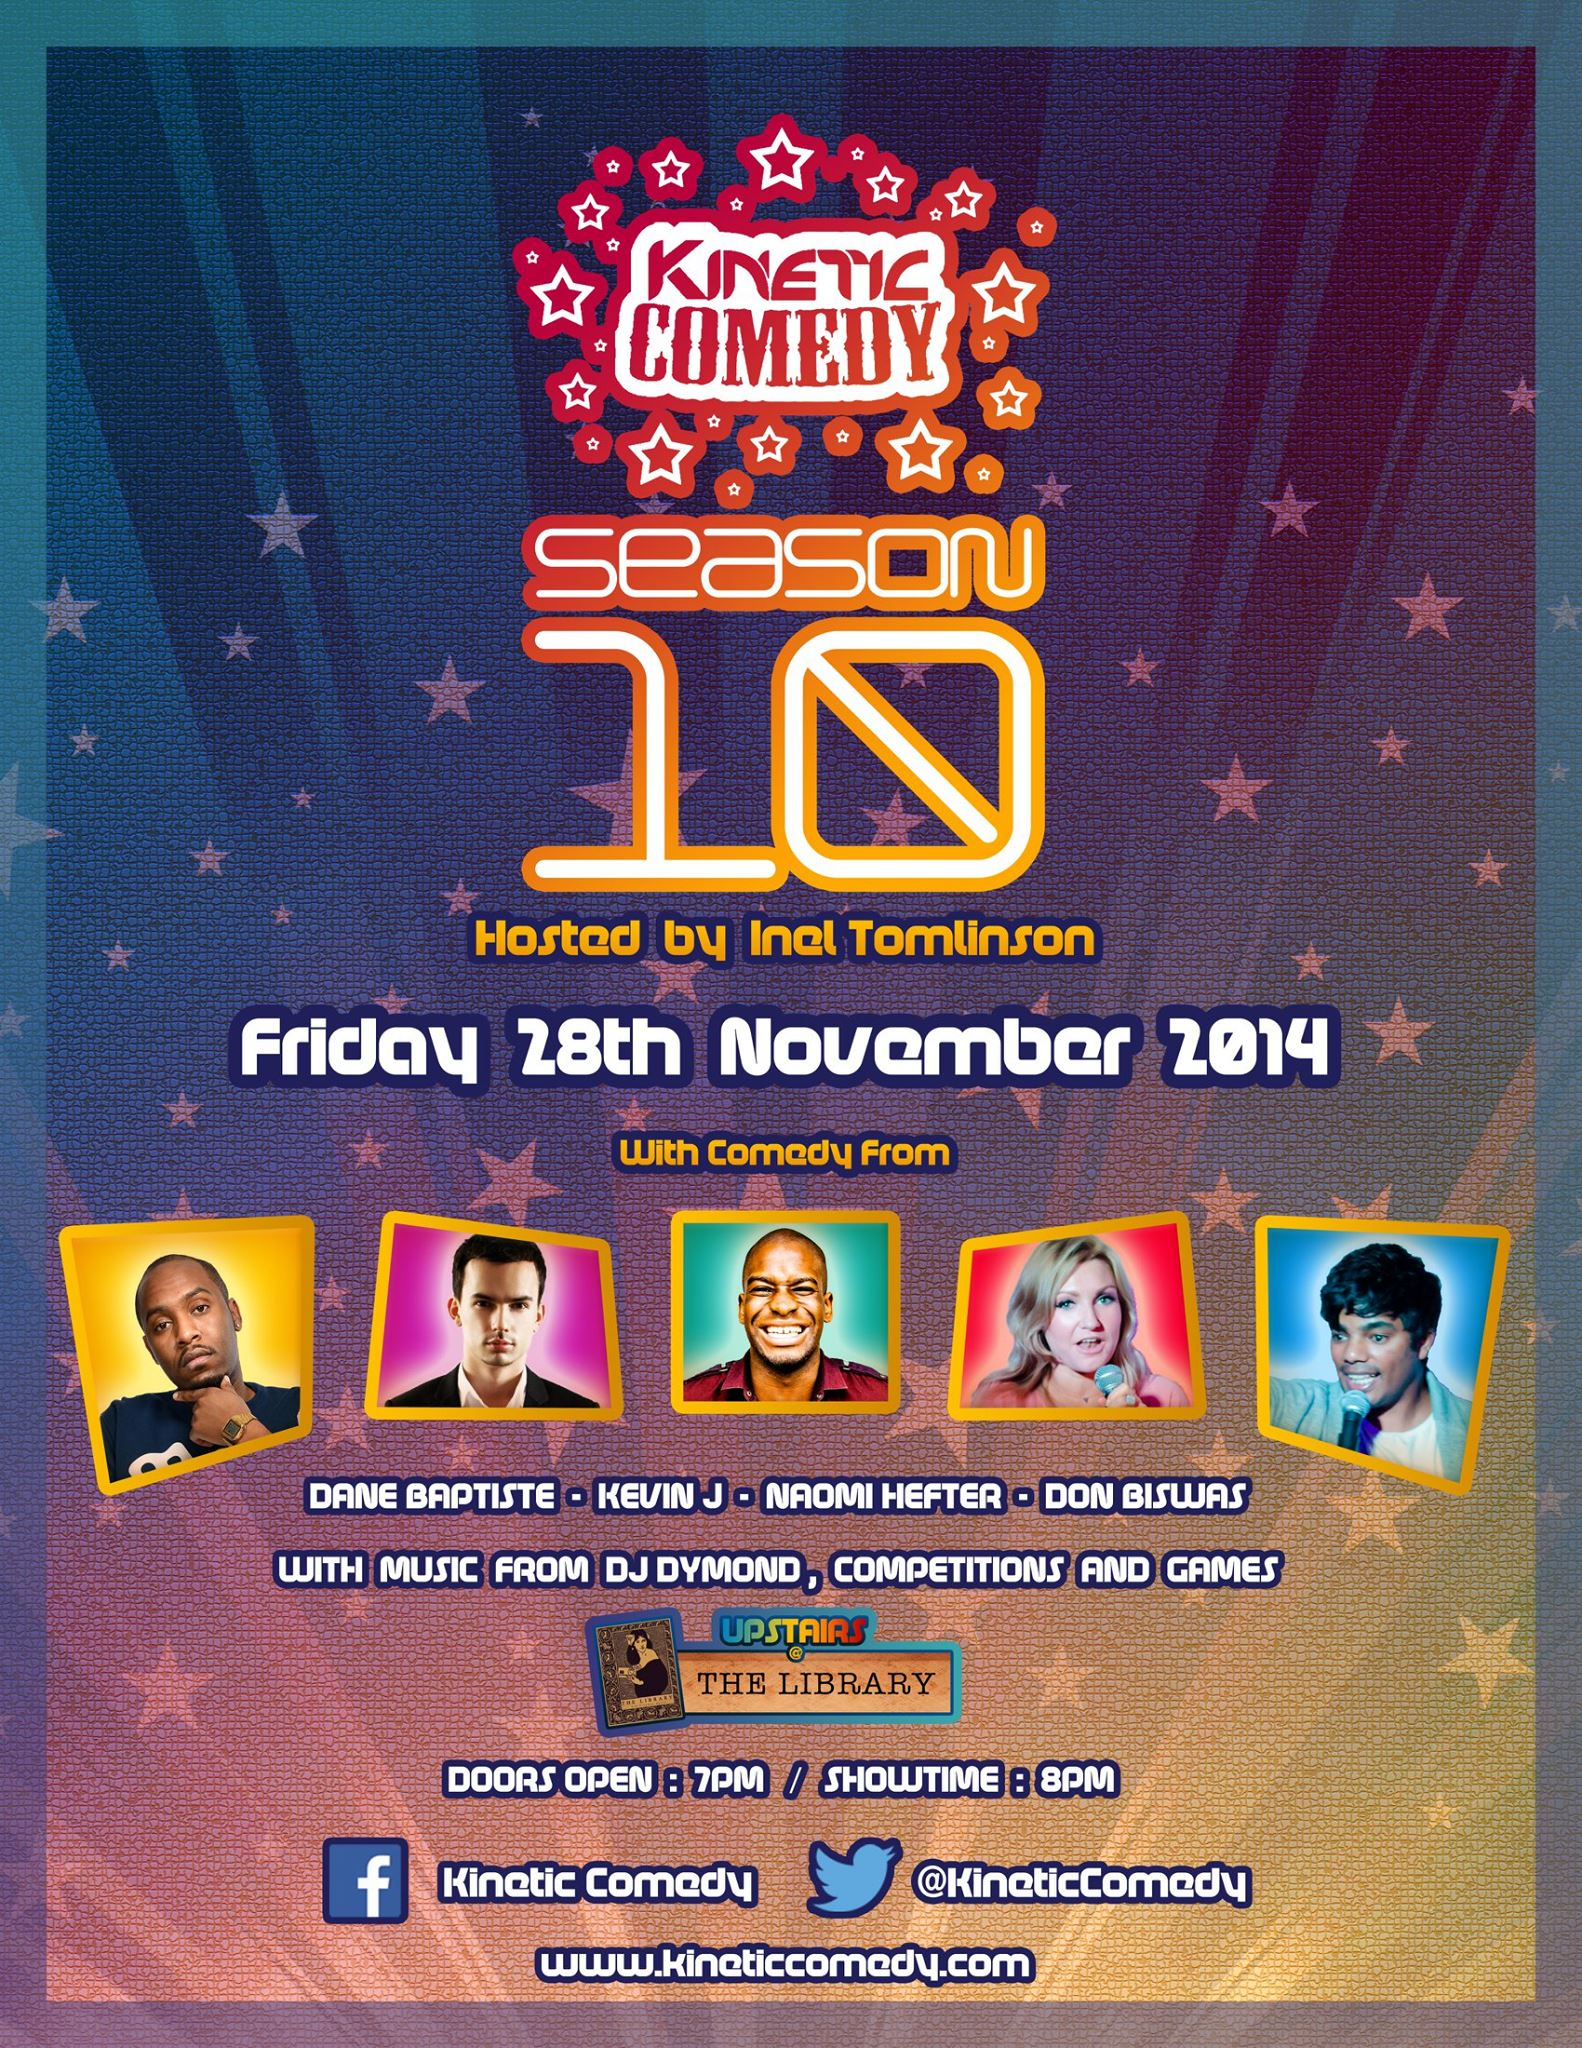 Kinetic Comedy 10.5 – The Last Show of the Season